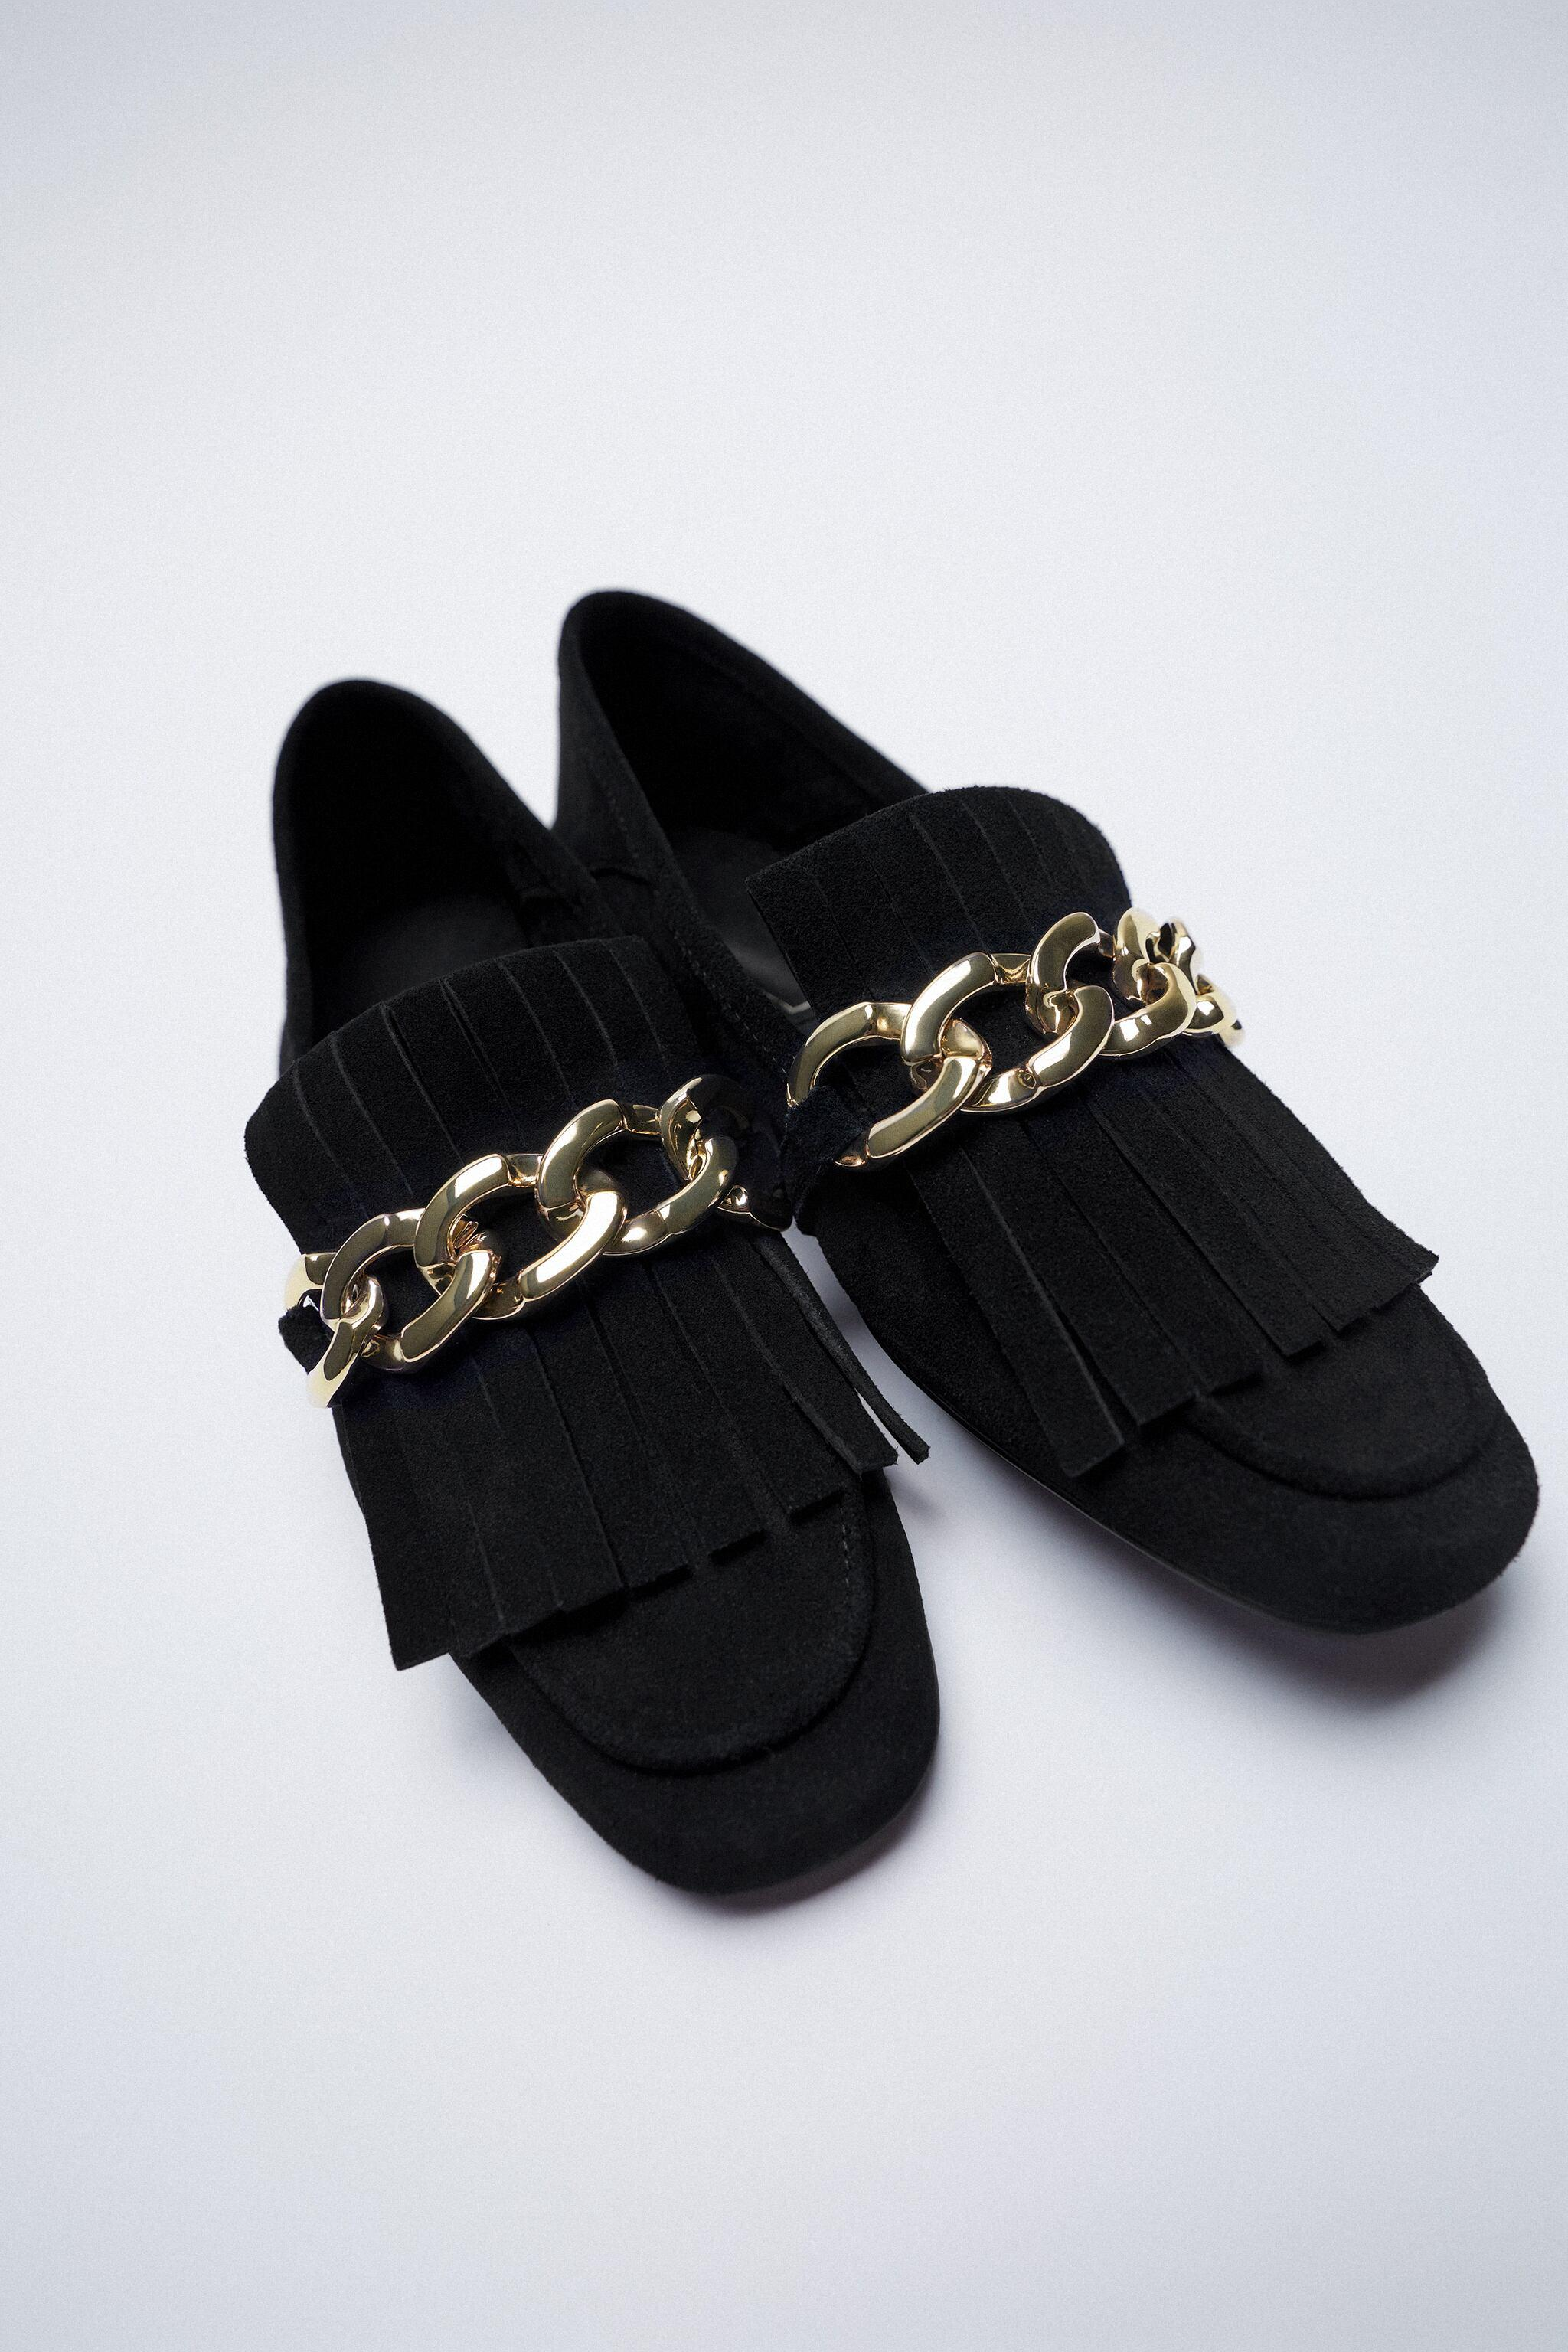 FRINGED SPLIT LEATHER MOCCASINS WITH CHAIN 6